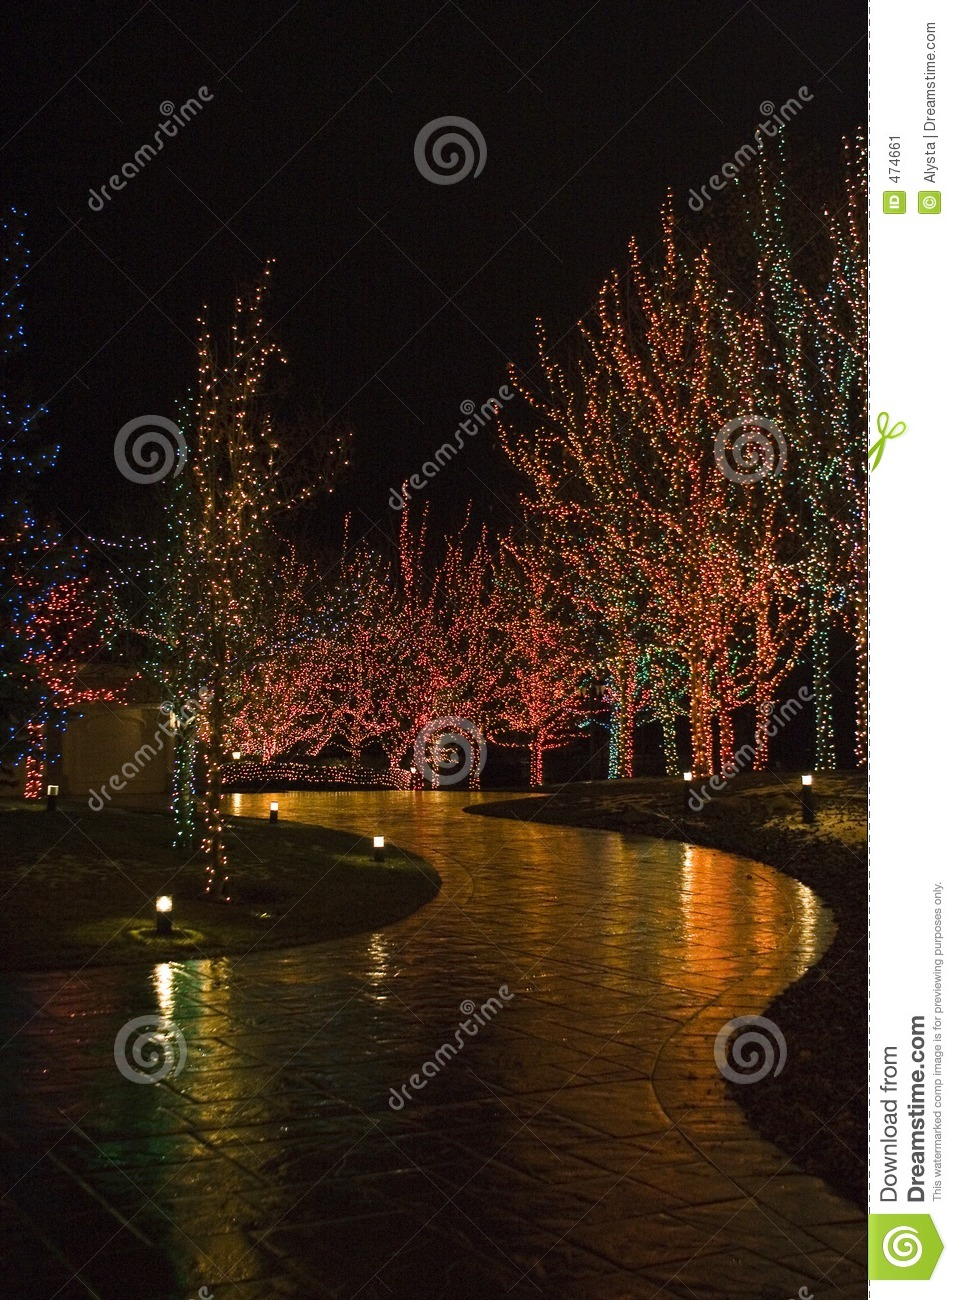 Christmas lights illuminating walkway stock image image for Sidewalk christmas lights